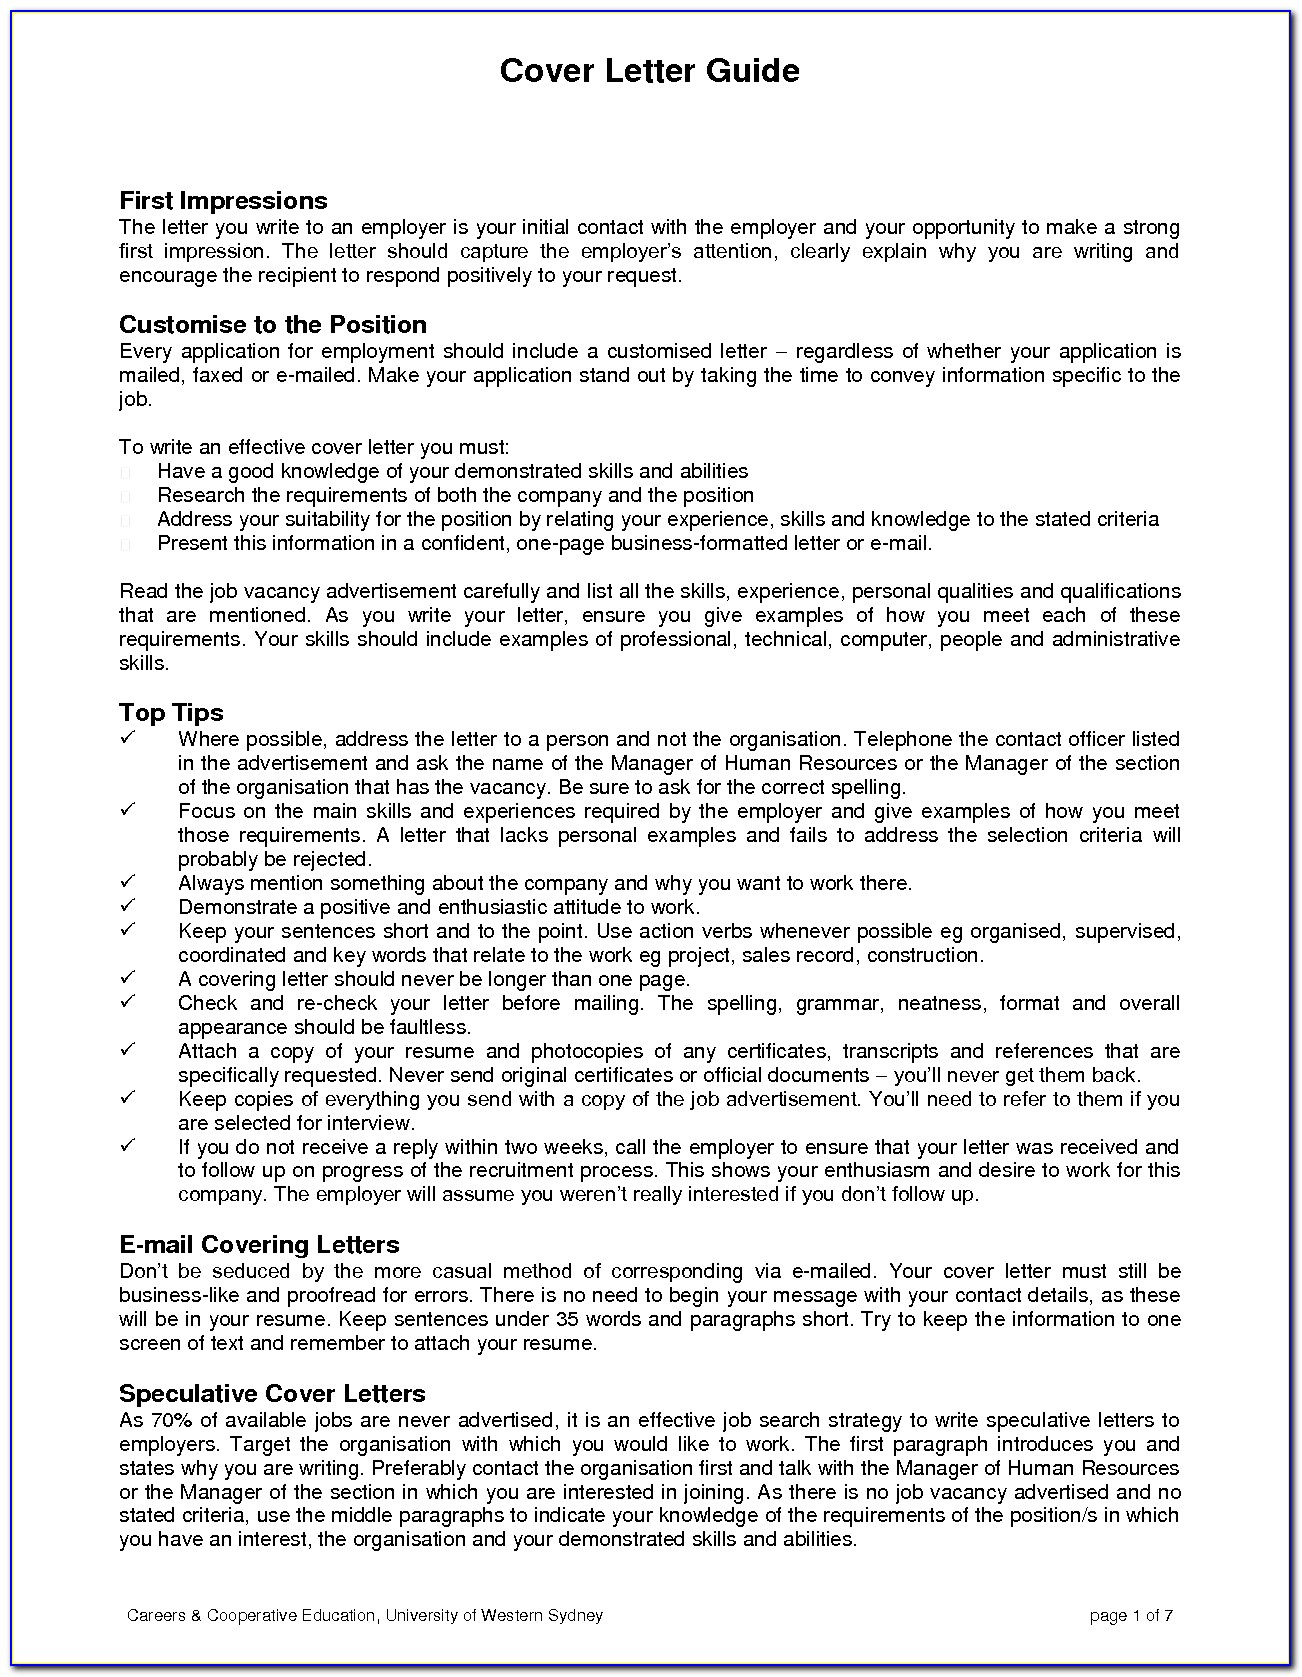 tour guide resume cover letter vincegray2014 college job description examples for Resume College Tour Guide Job Description Resume